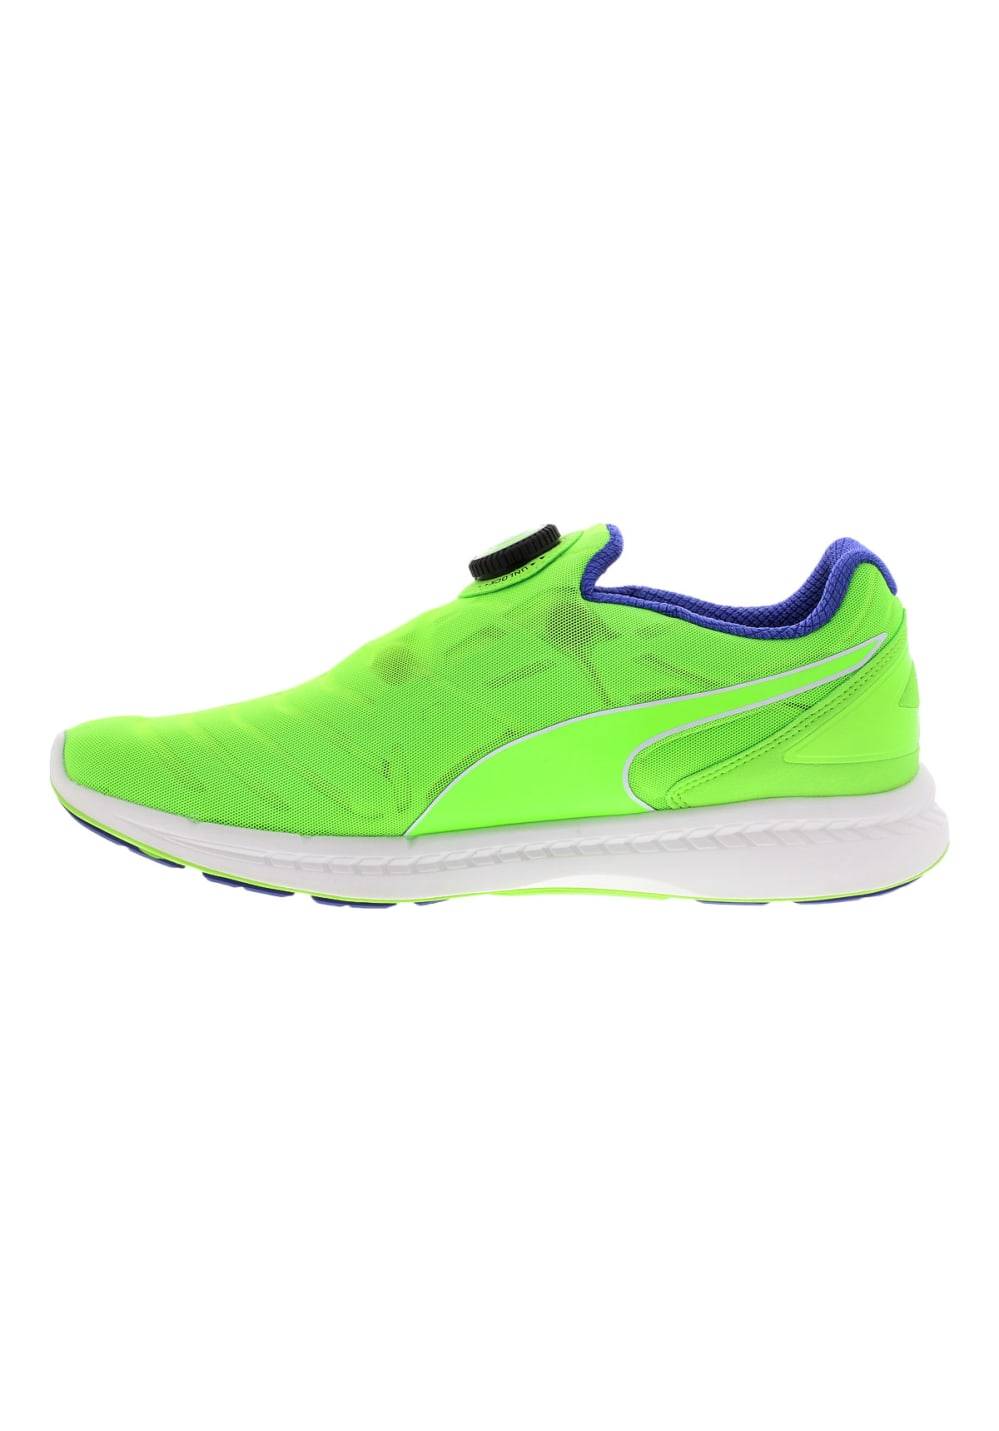 Puma IGNITE Disc Chaussures running pour Homme Vert